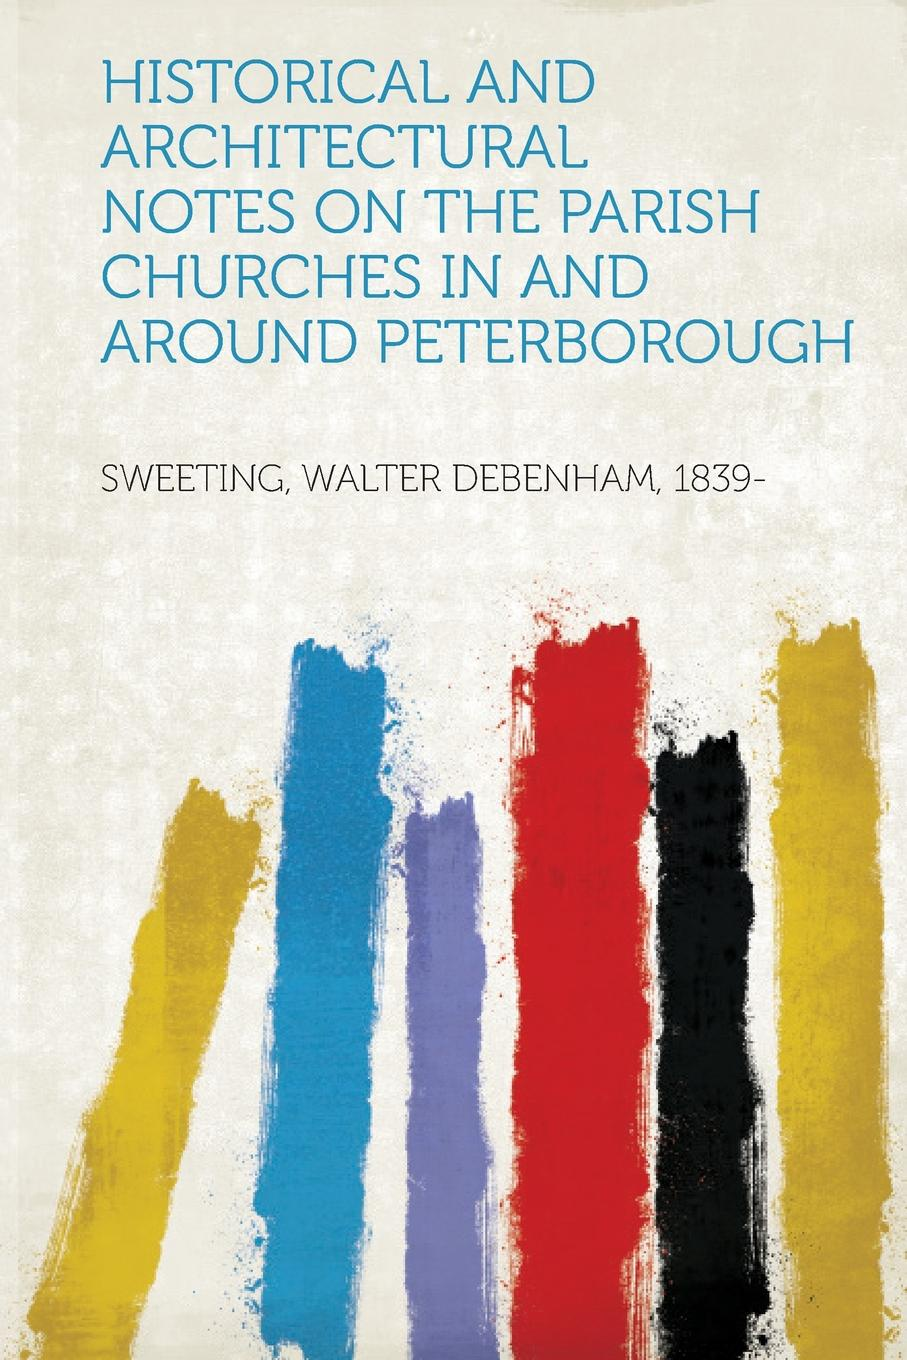 Sweeting Walter Debenham 1839- Historical and Architectural Notes on the Parish Churches in Around Peterborough